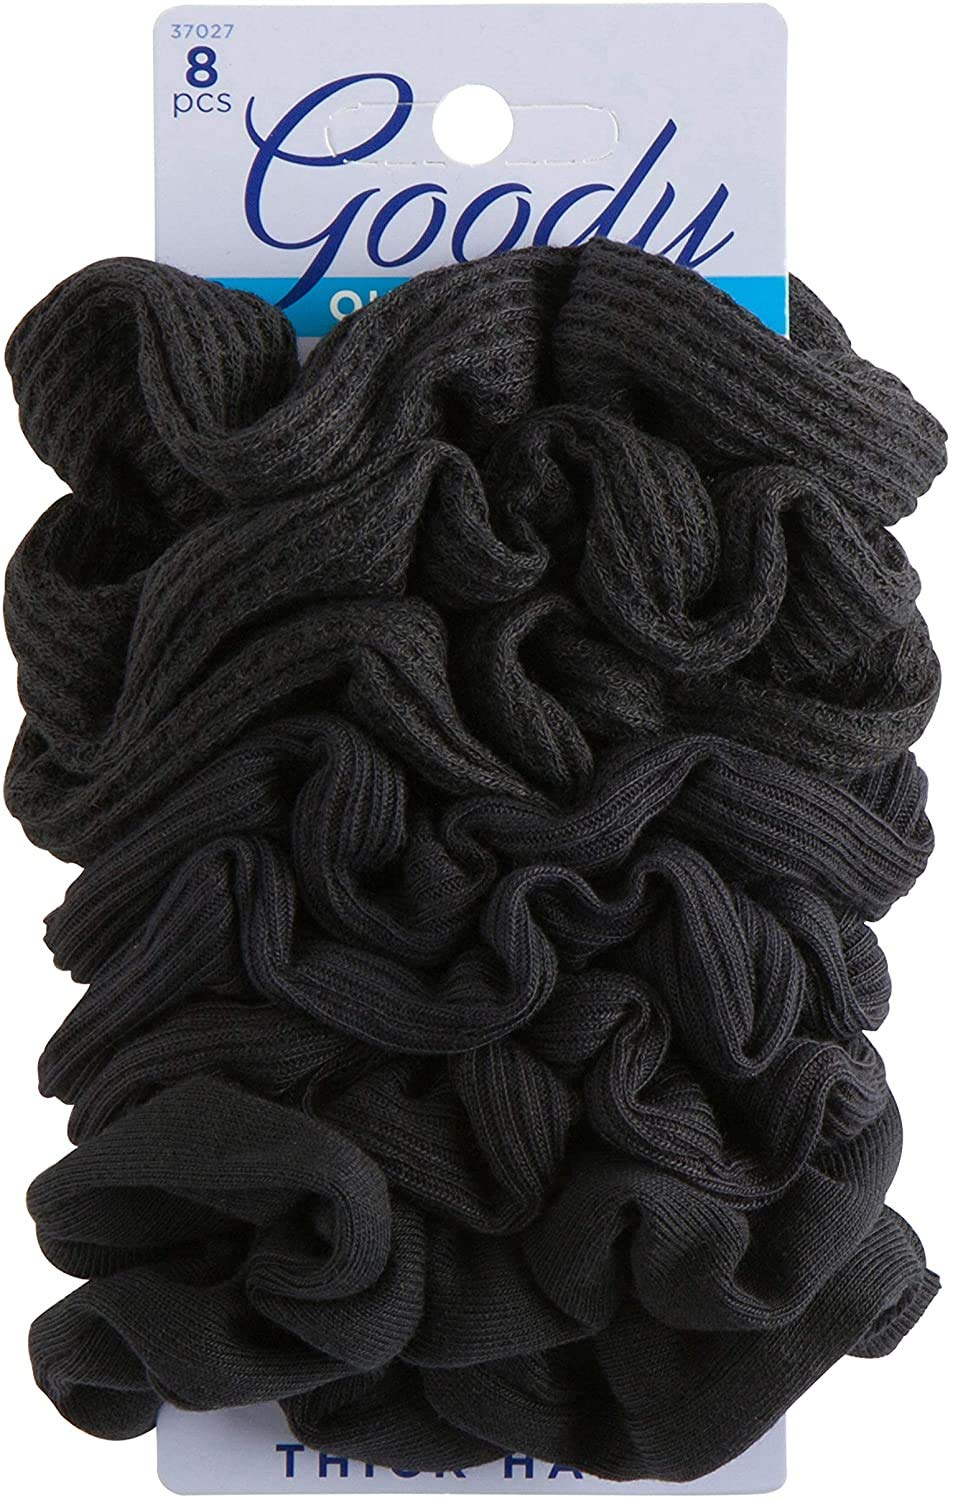 Goody Hair Ouchless Painfree Women's Hair Scrunchie, 8 count, Black : Hair Scrunchie : Beauty